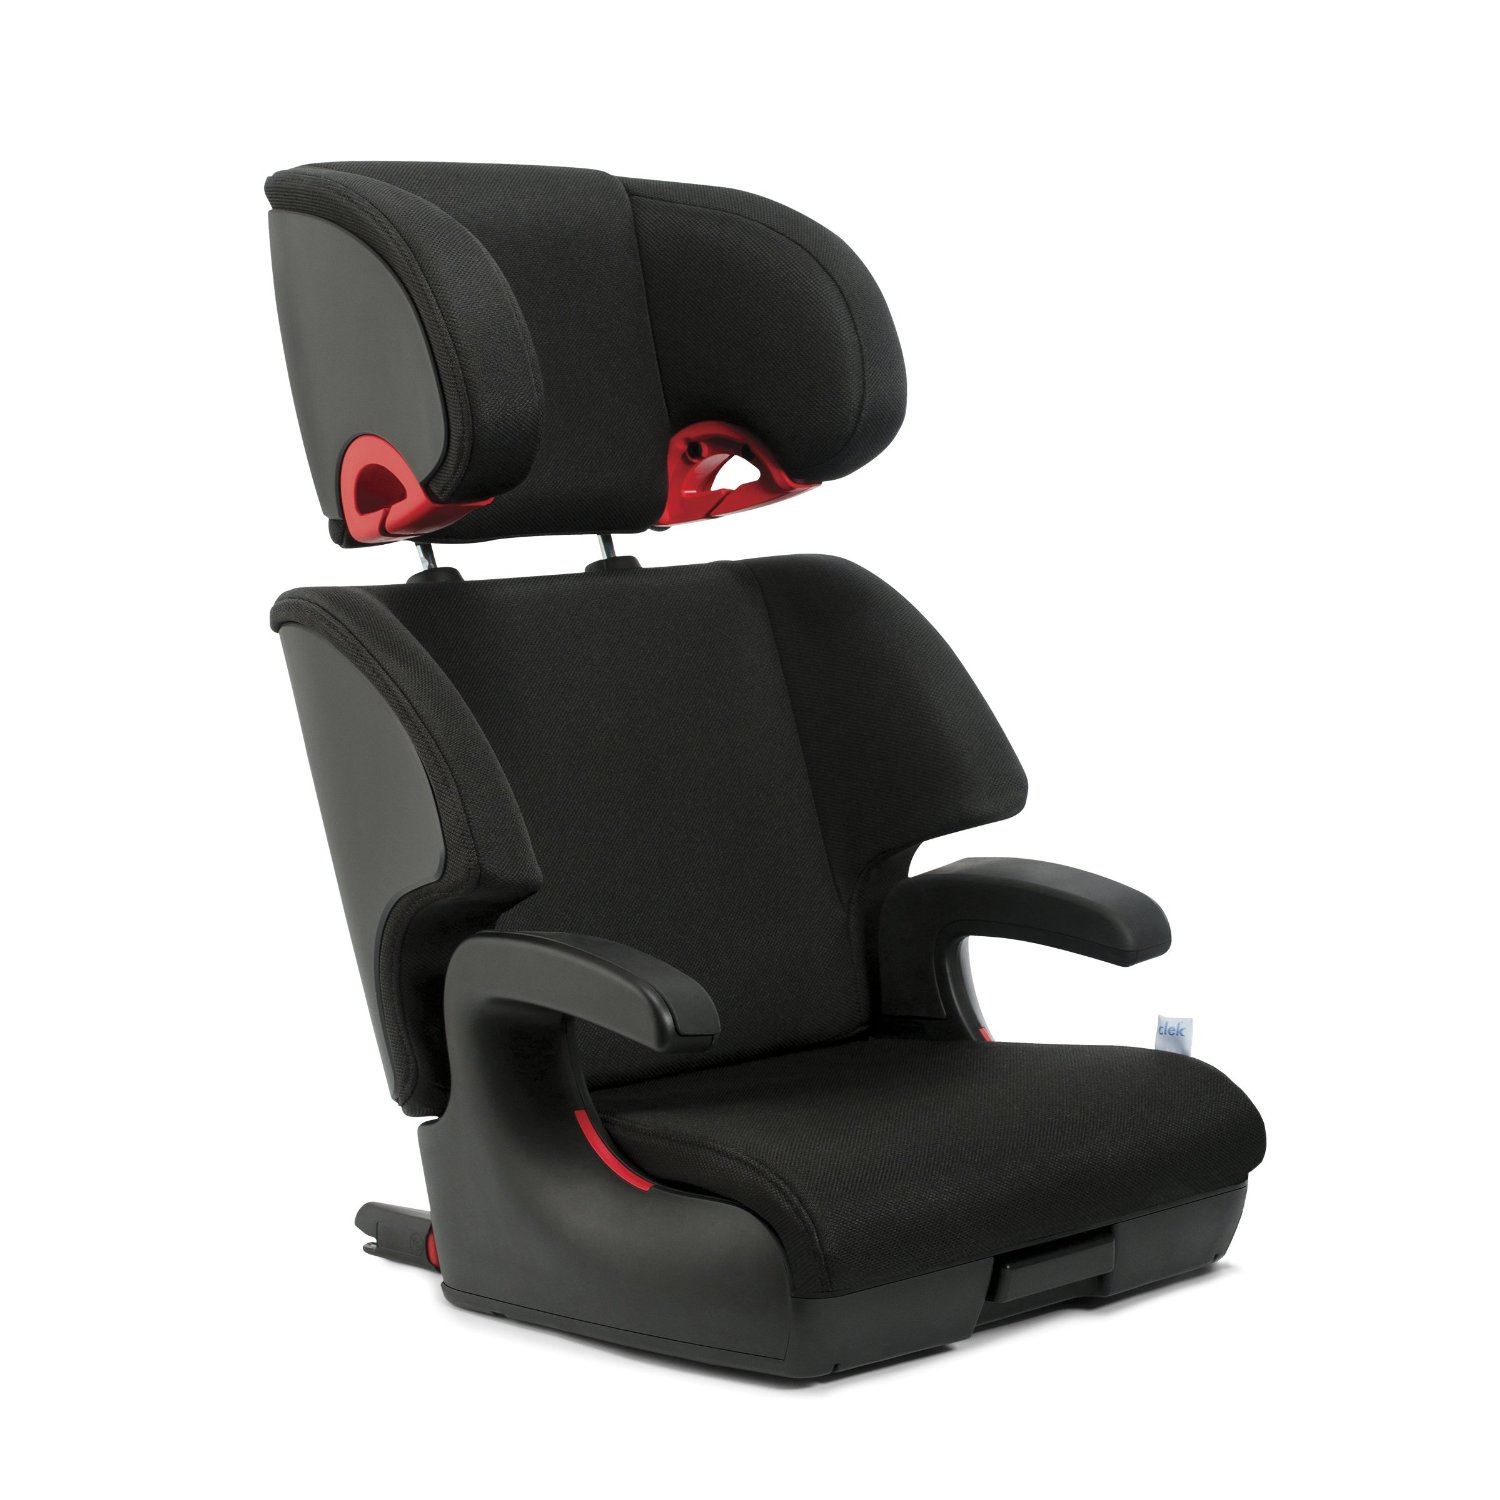 High Back Booster Seat Reviews - Clek Oobr